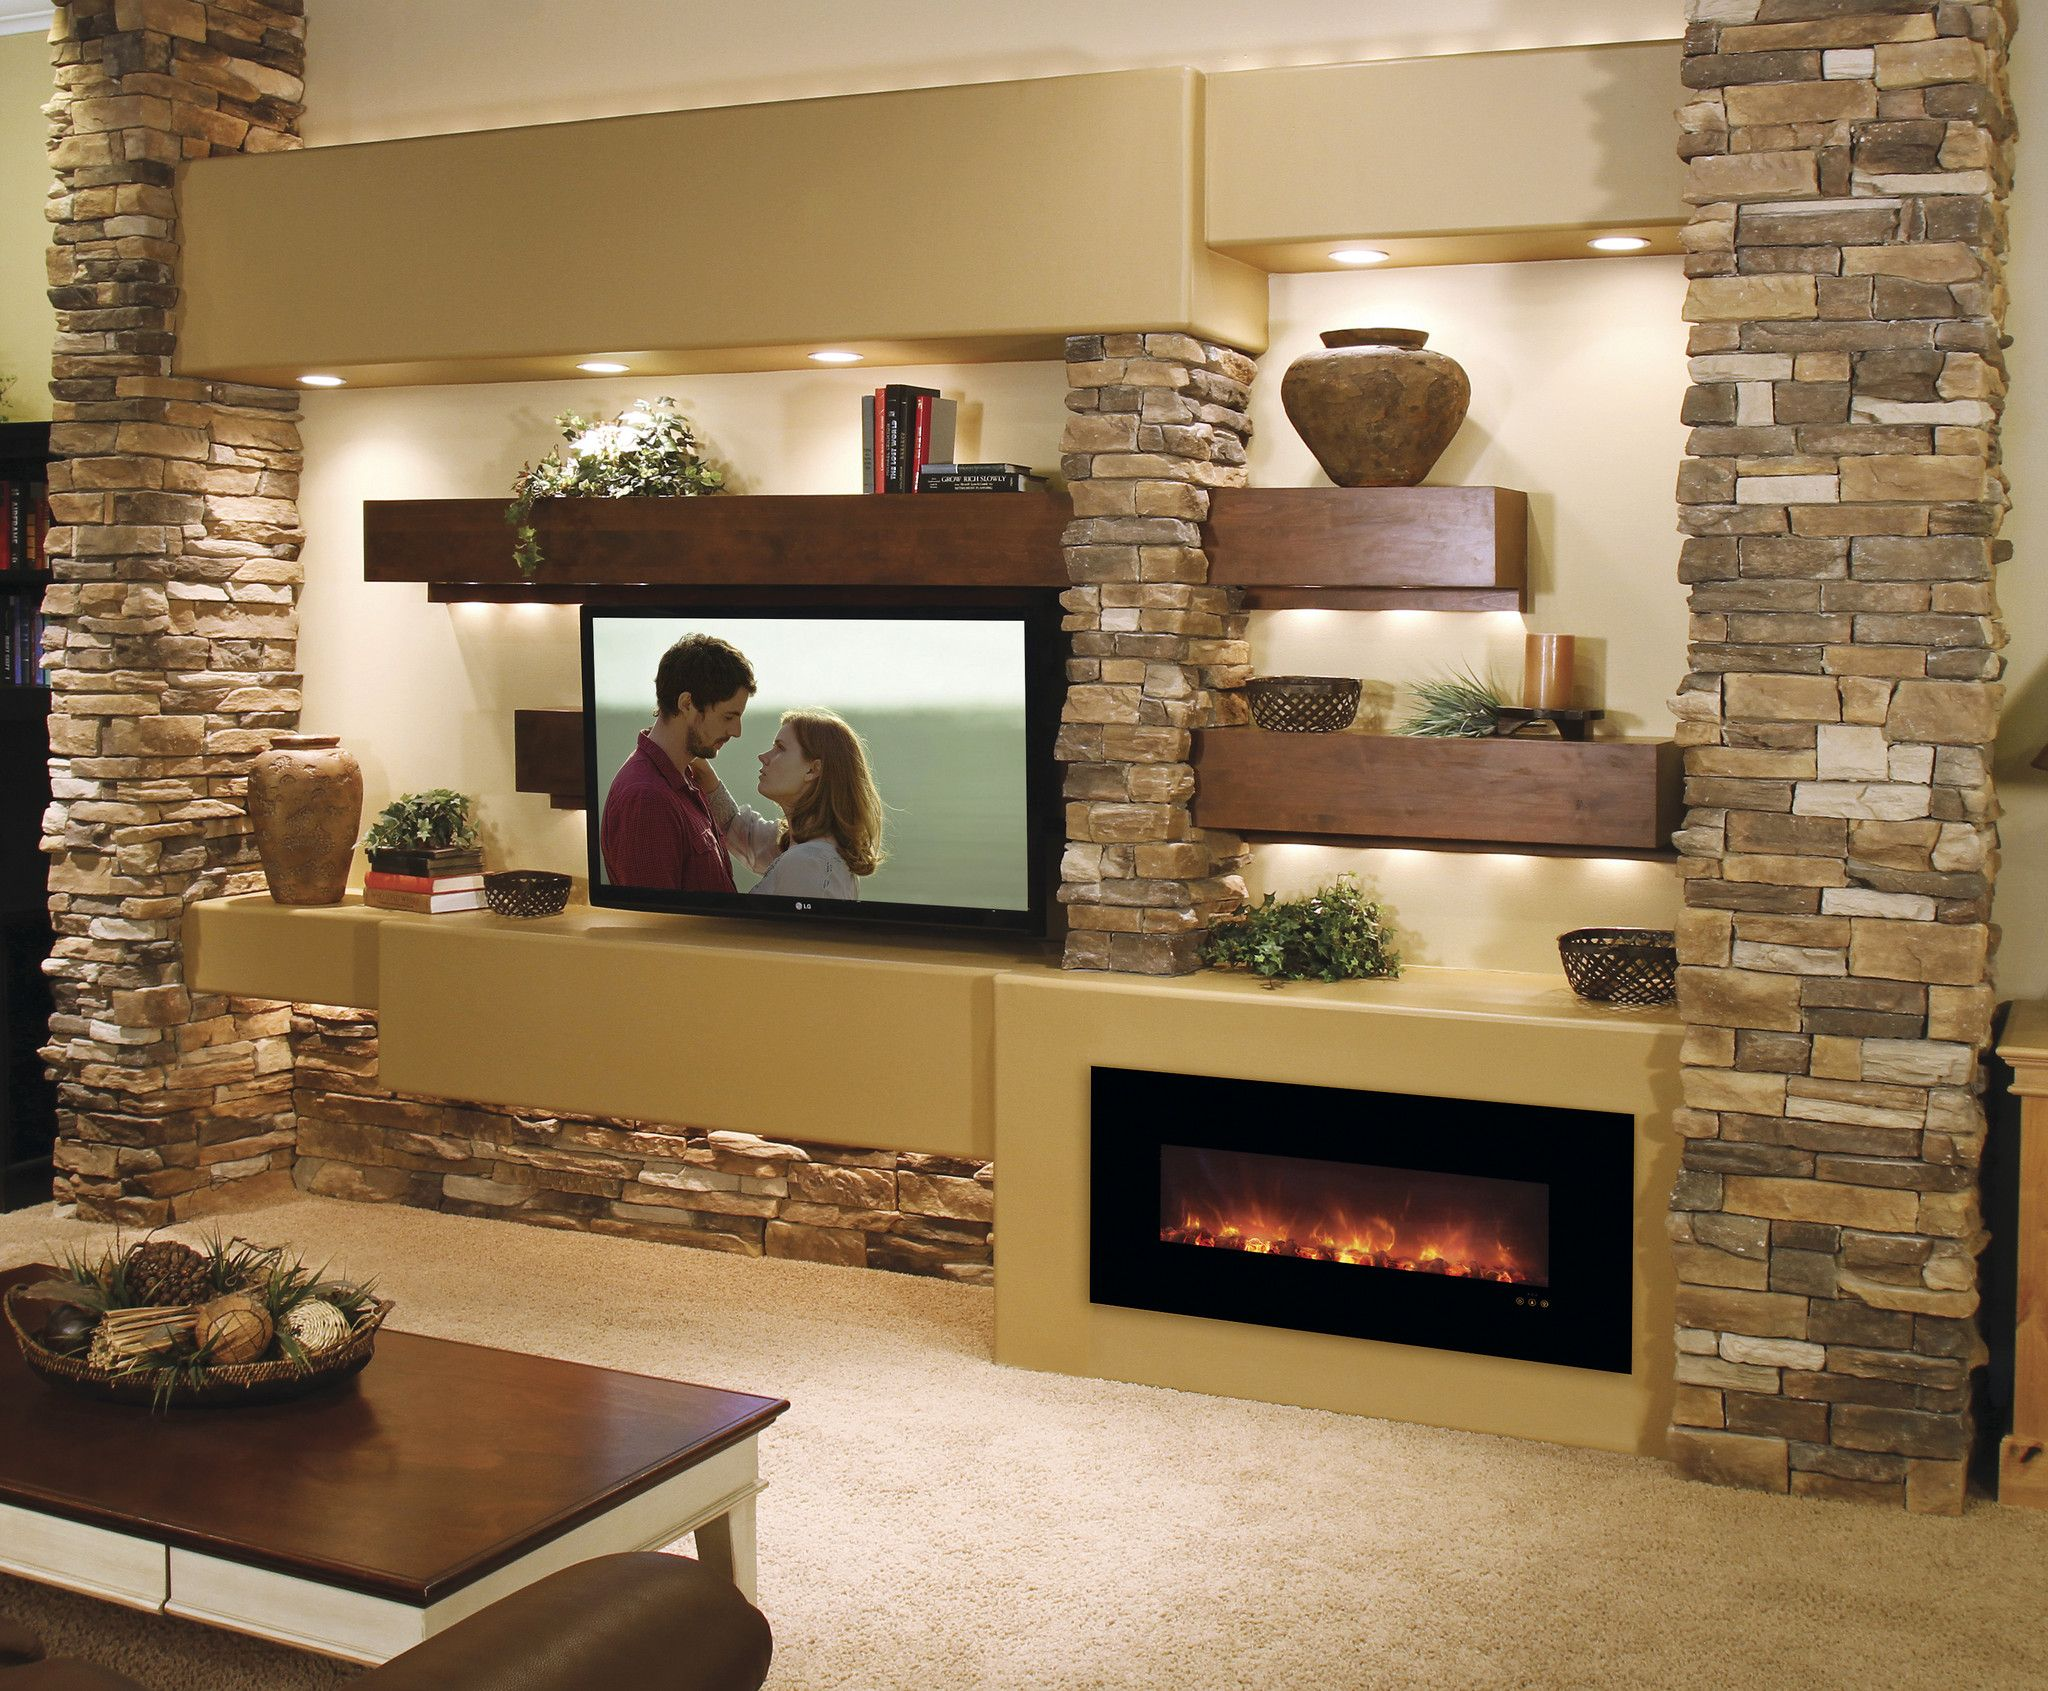 Modern Flames 43 Built inWall Mounted Electric Fireplace No